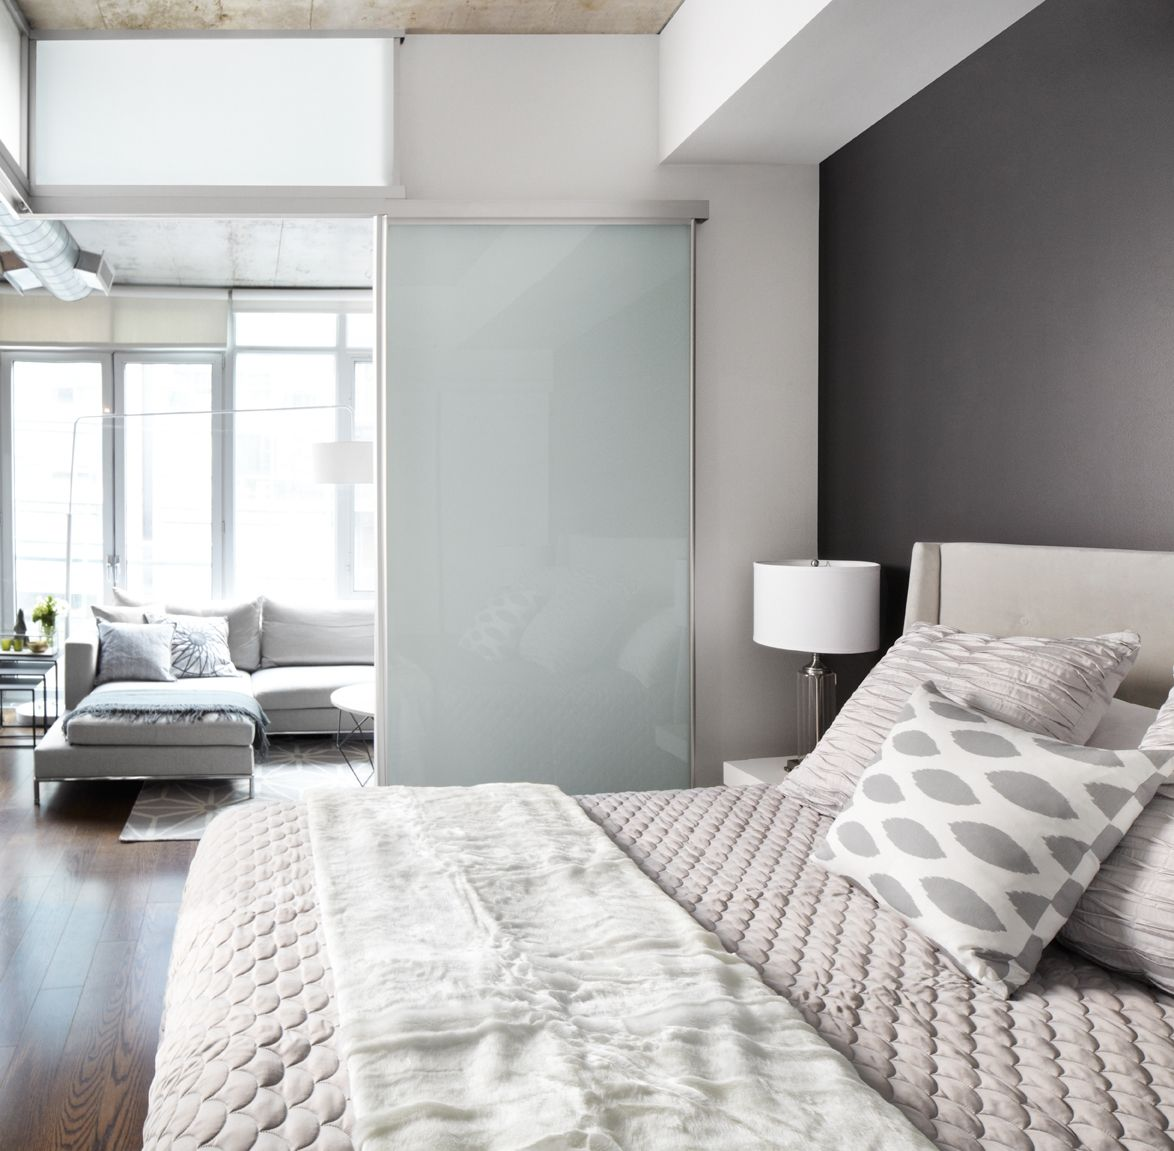 Greenberg Suite, Condo- Bedroom, Toronto By